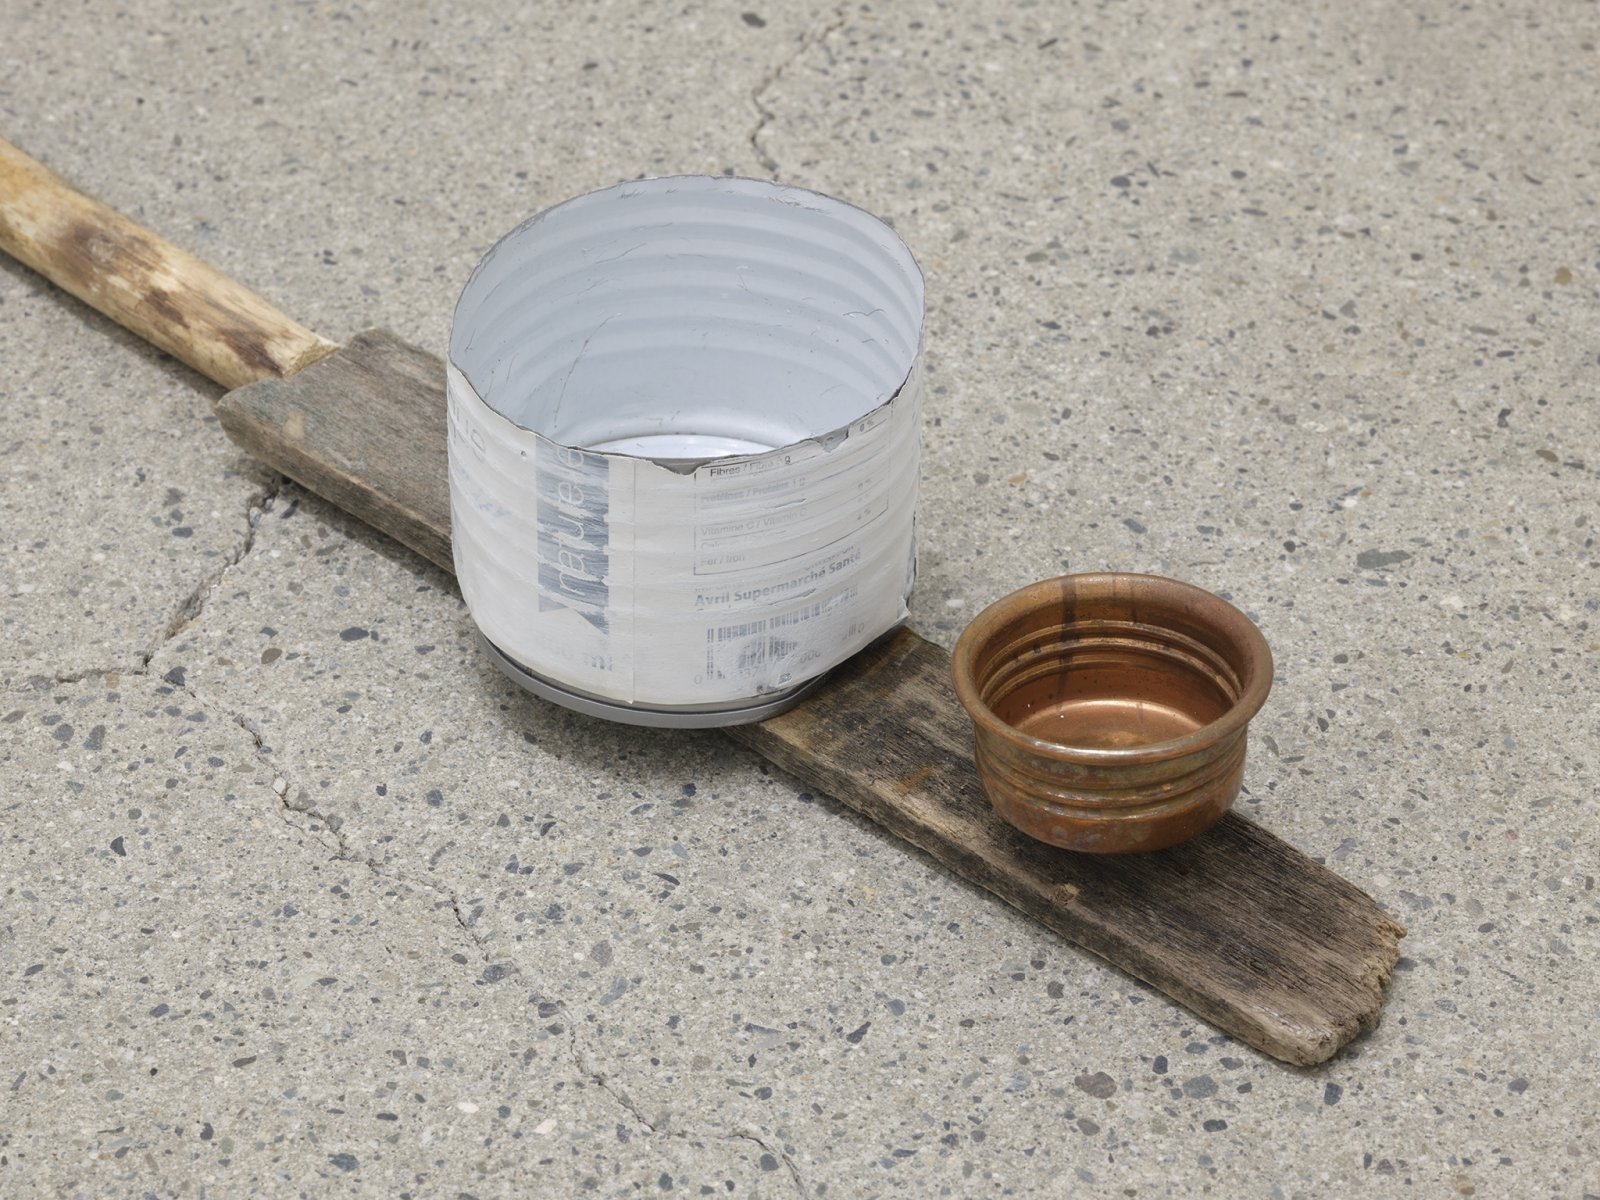 Ashes Withyman, River ladder (detail), 2020, found fence slat, branches, copper cup, tin can, rattle handle, 3 x 24 x 4 in. (8 x 61 x 9 cm)   by Ashes Withyman